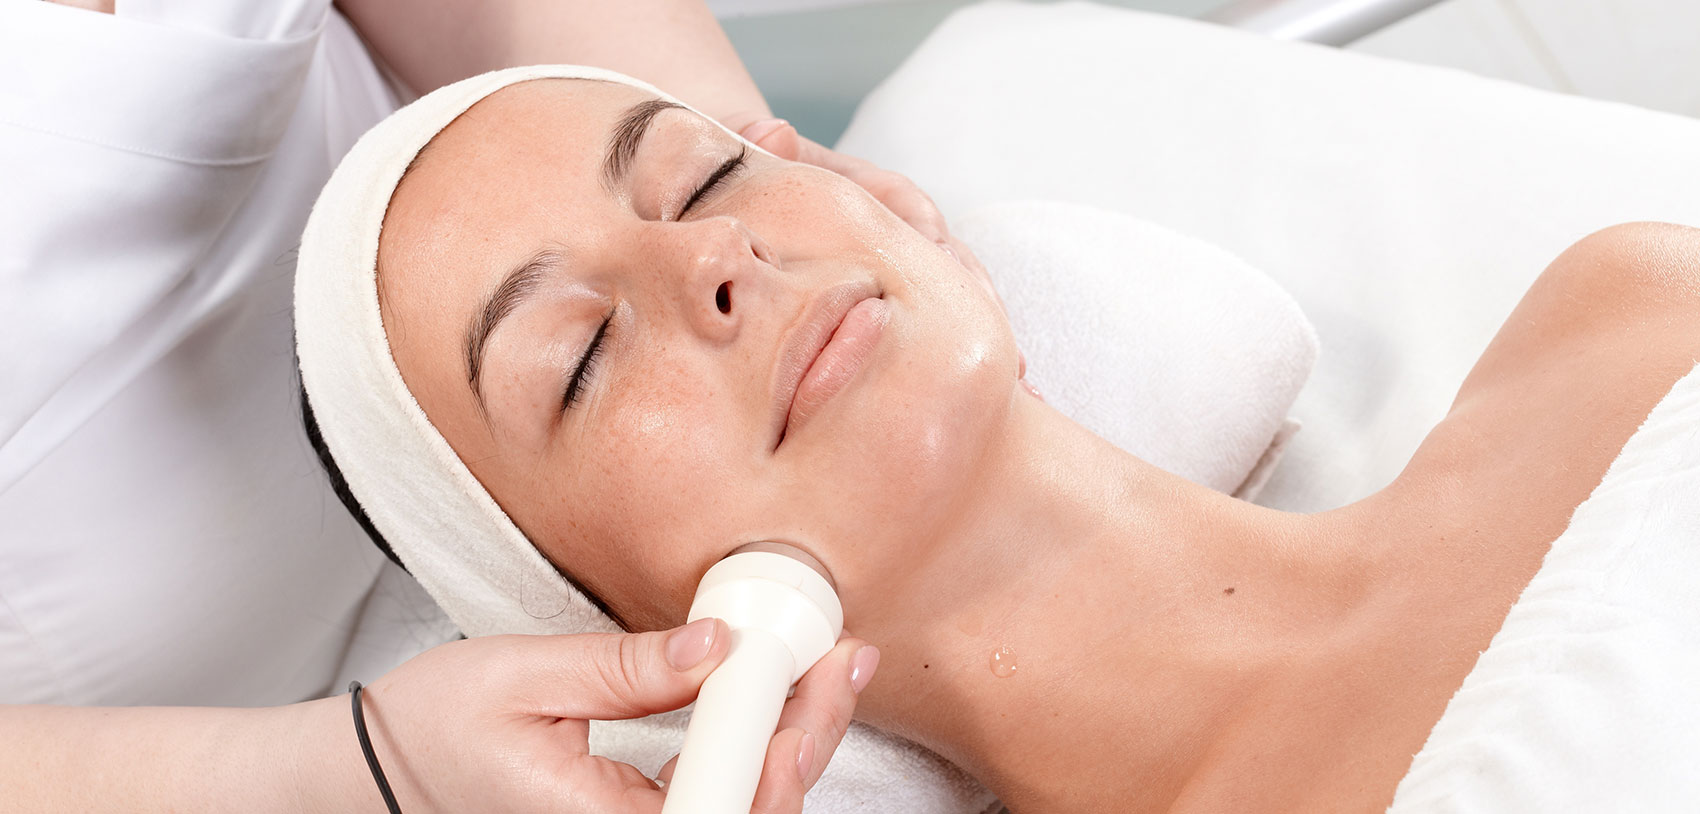 Photo of a woman receiving a skin tightening facial treatment